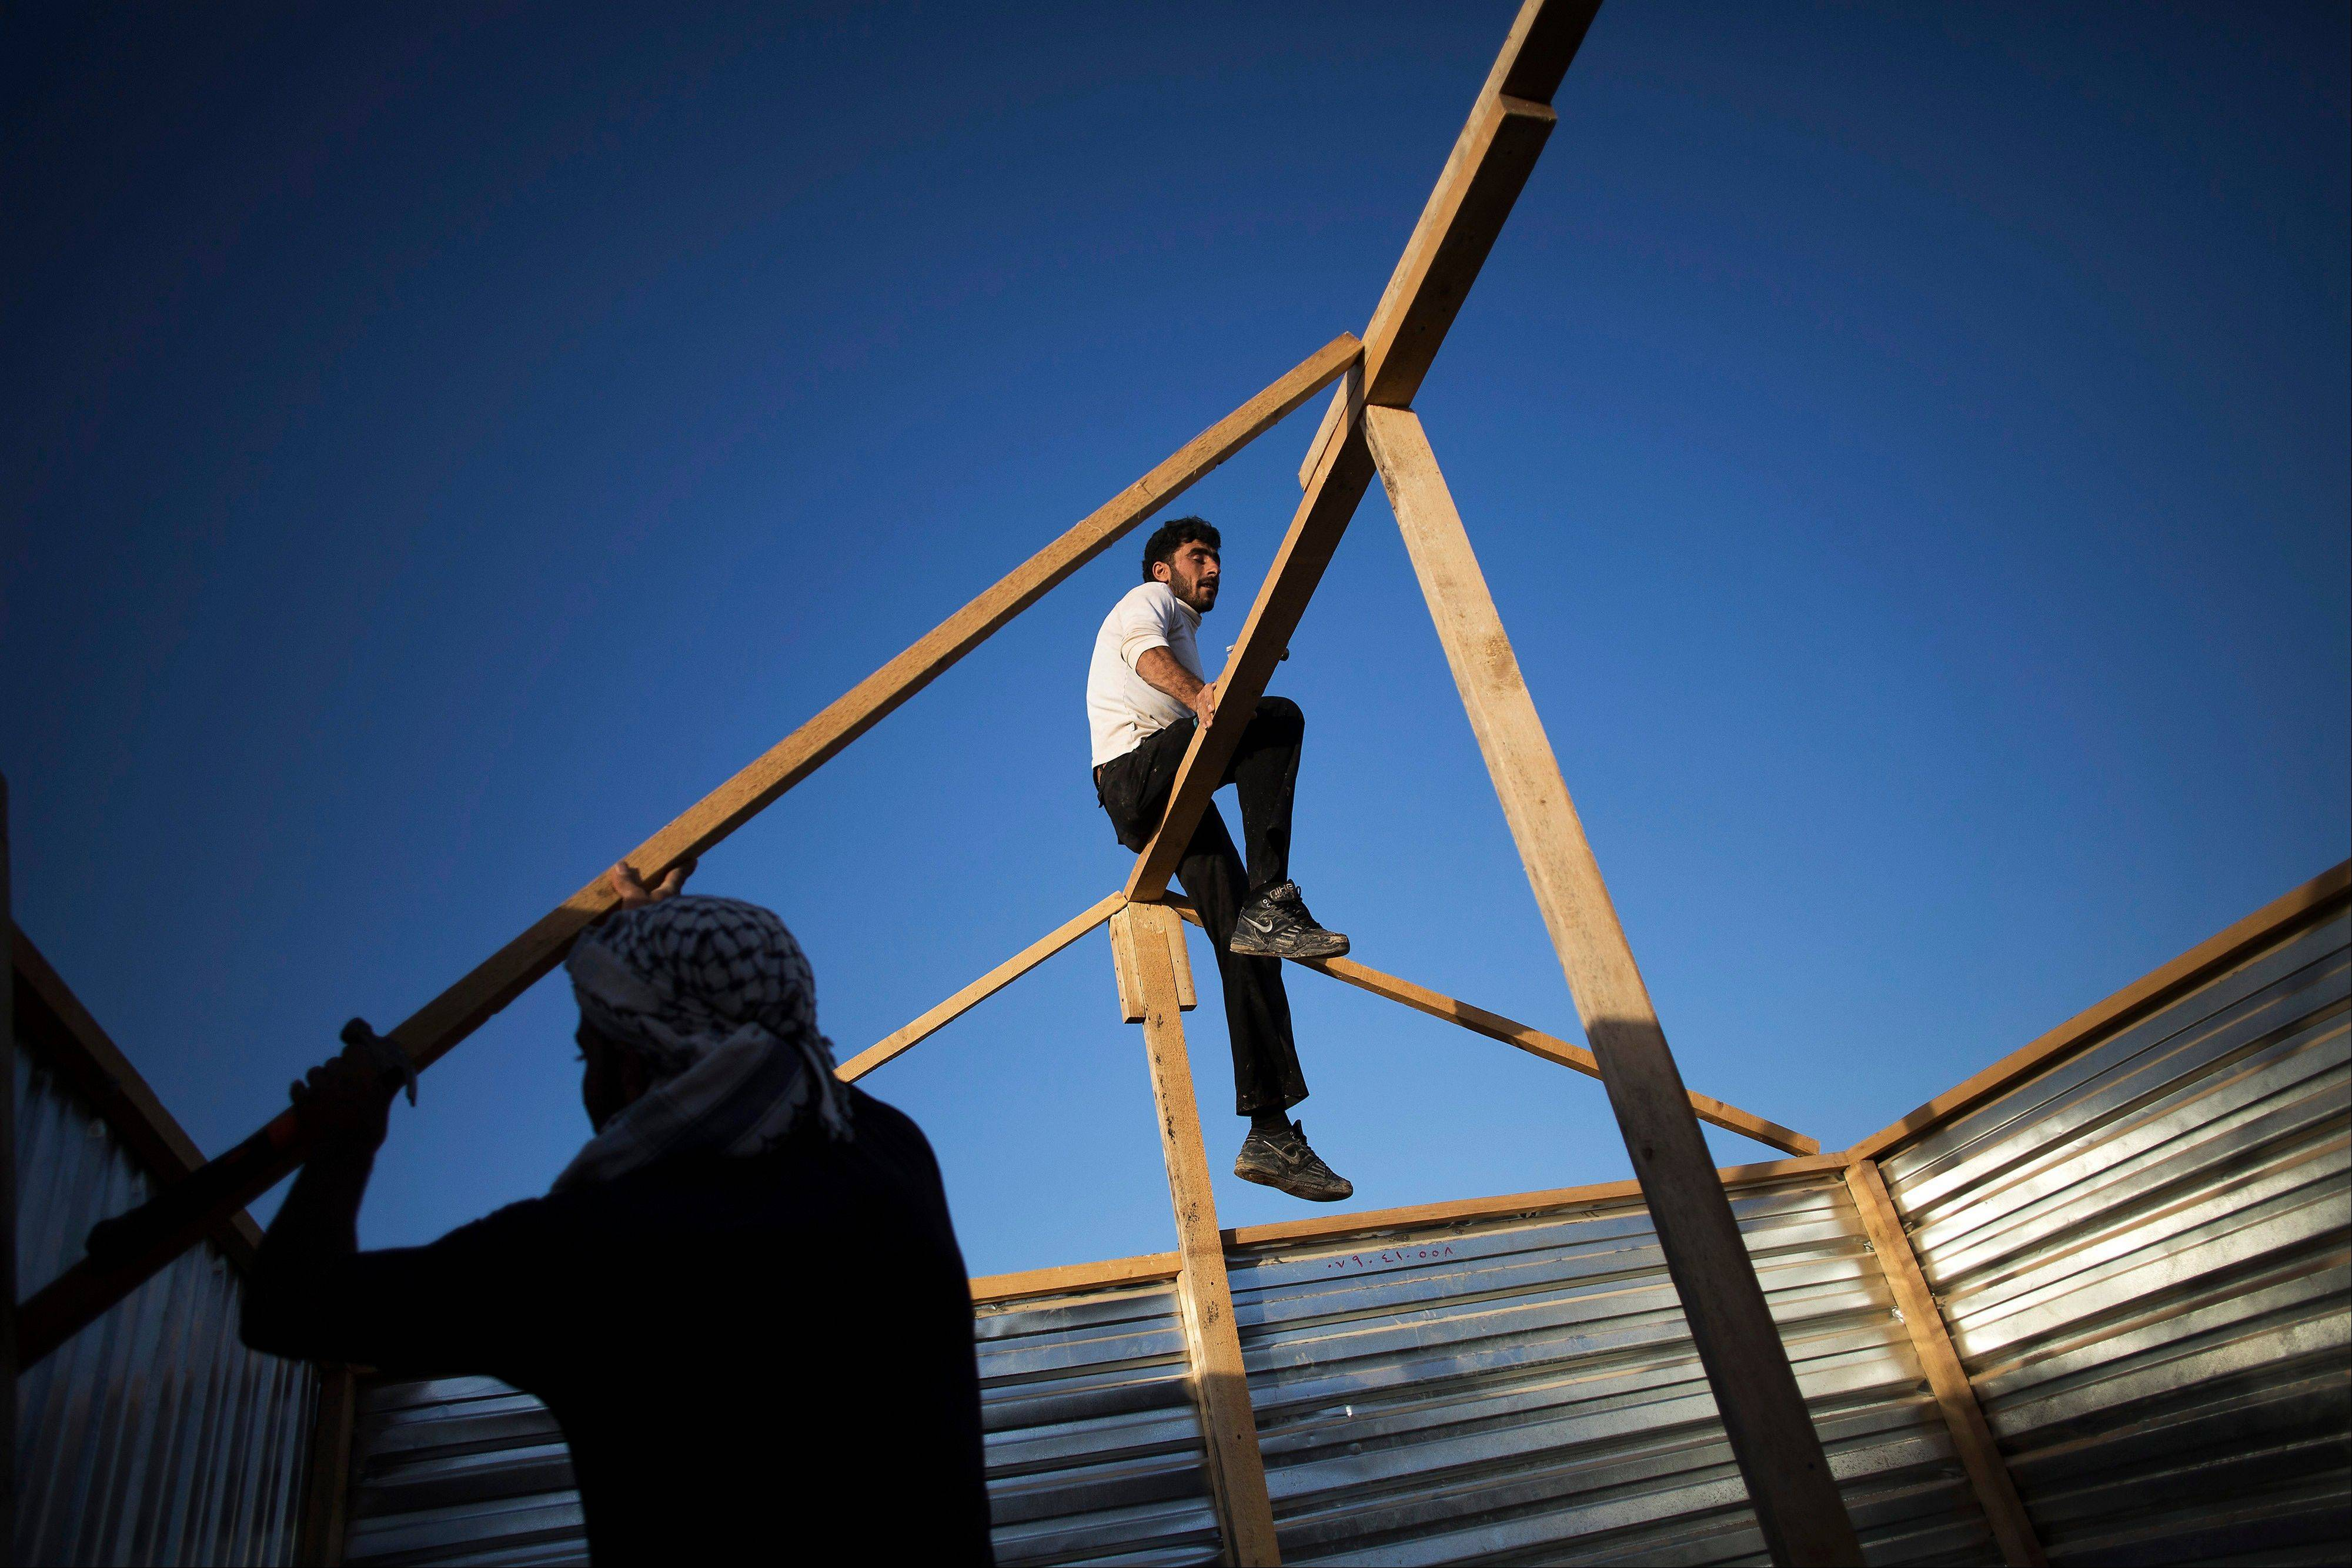 Syrian refugees build a makeshift house at the Zaatari refugee camp near the Syrian border in Jordan. With Syria's civil war in its third year, more than 2 million Syrians have fled their country. About 100,000 live in this camp.